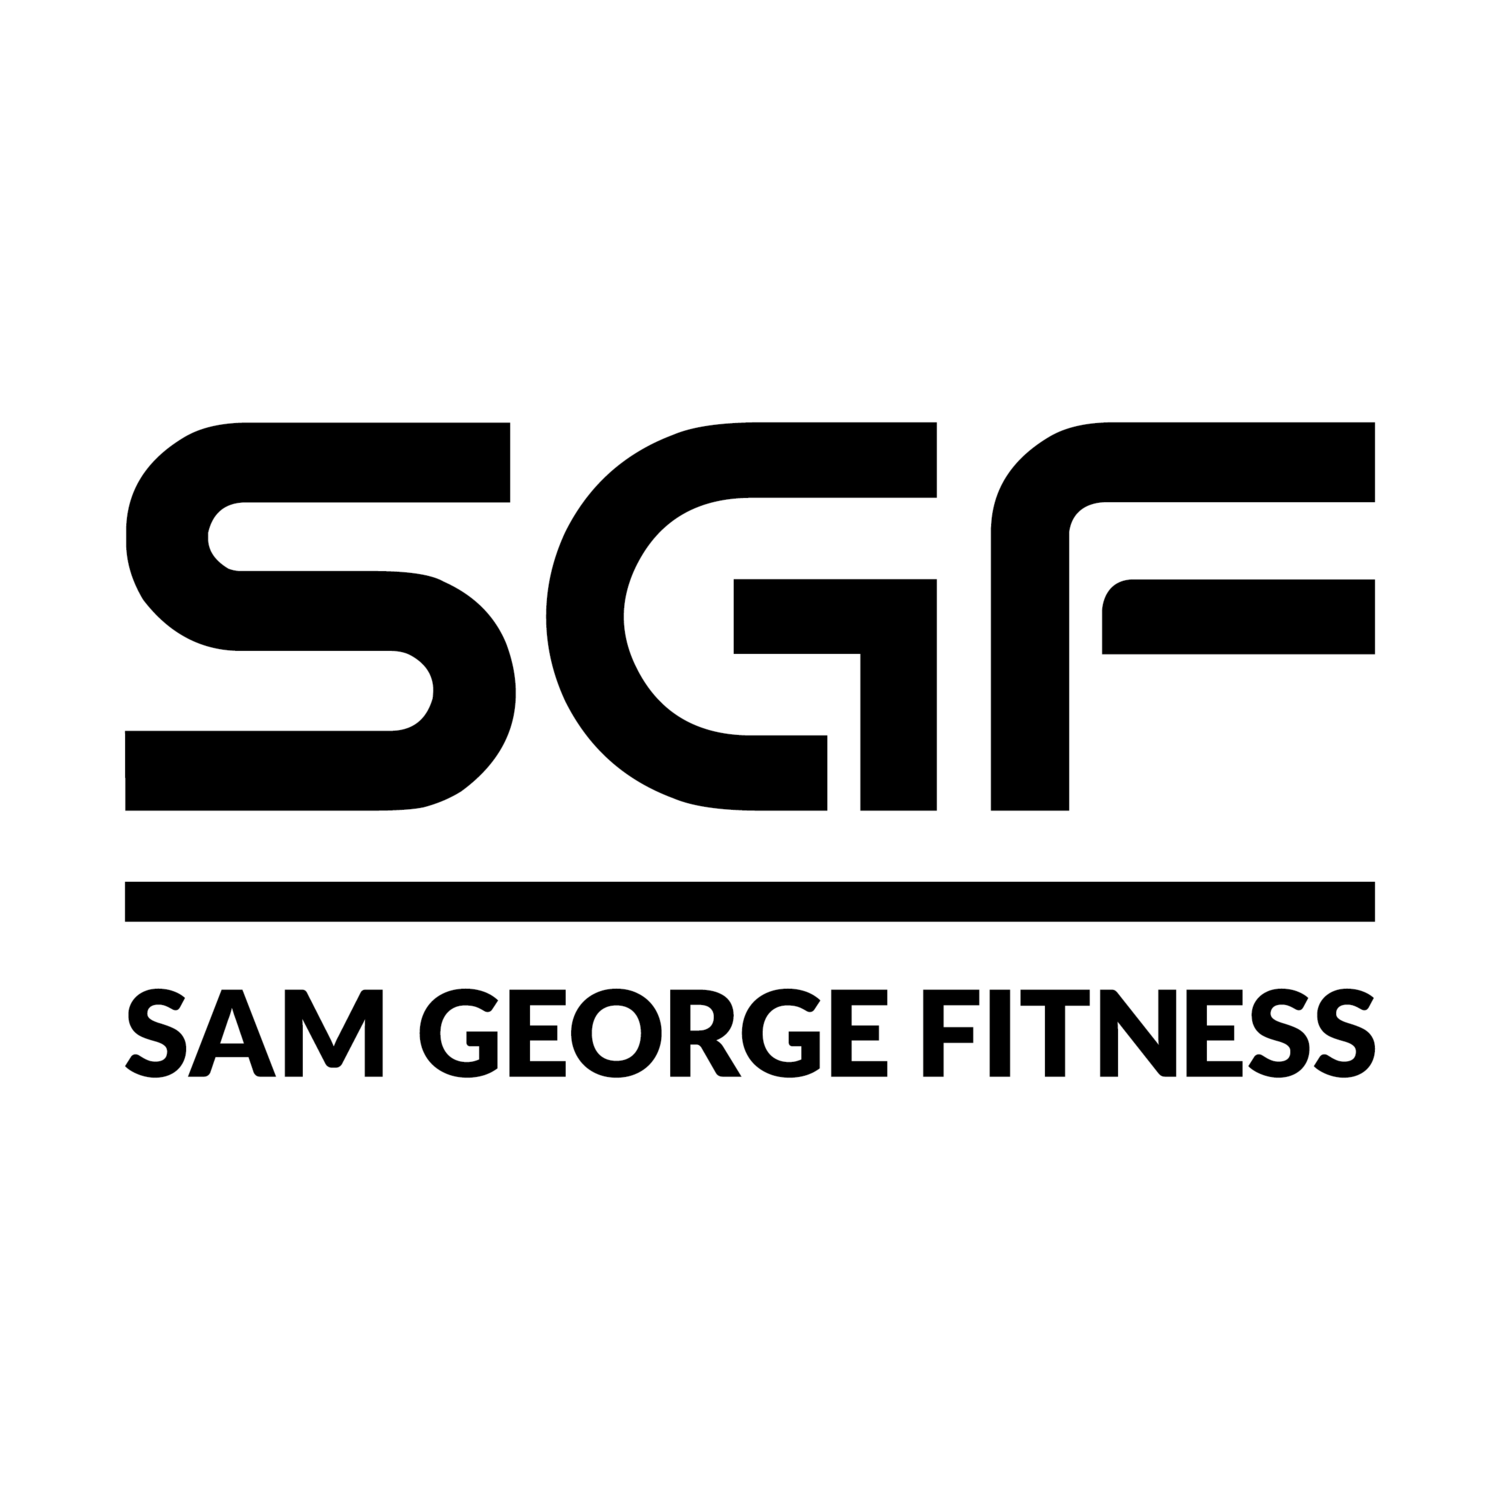 Sam George Fitness